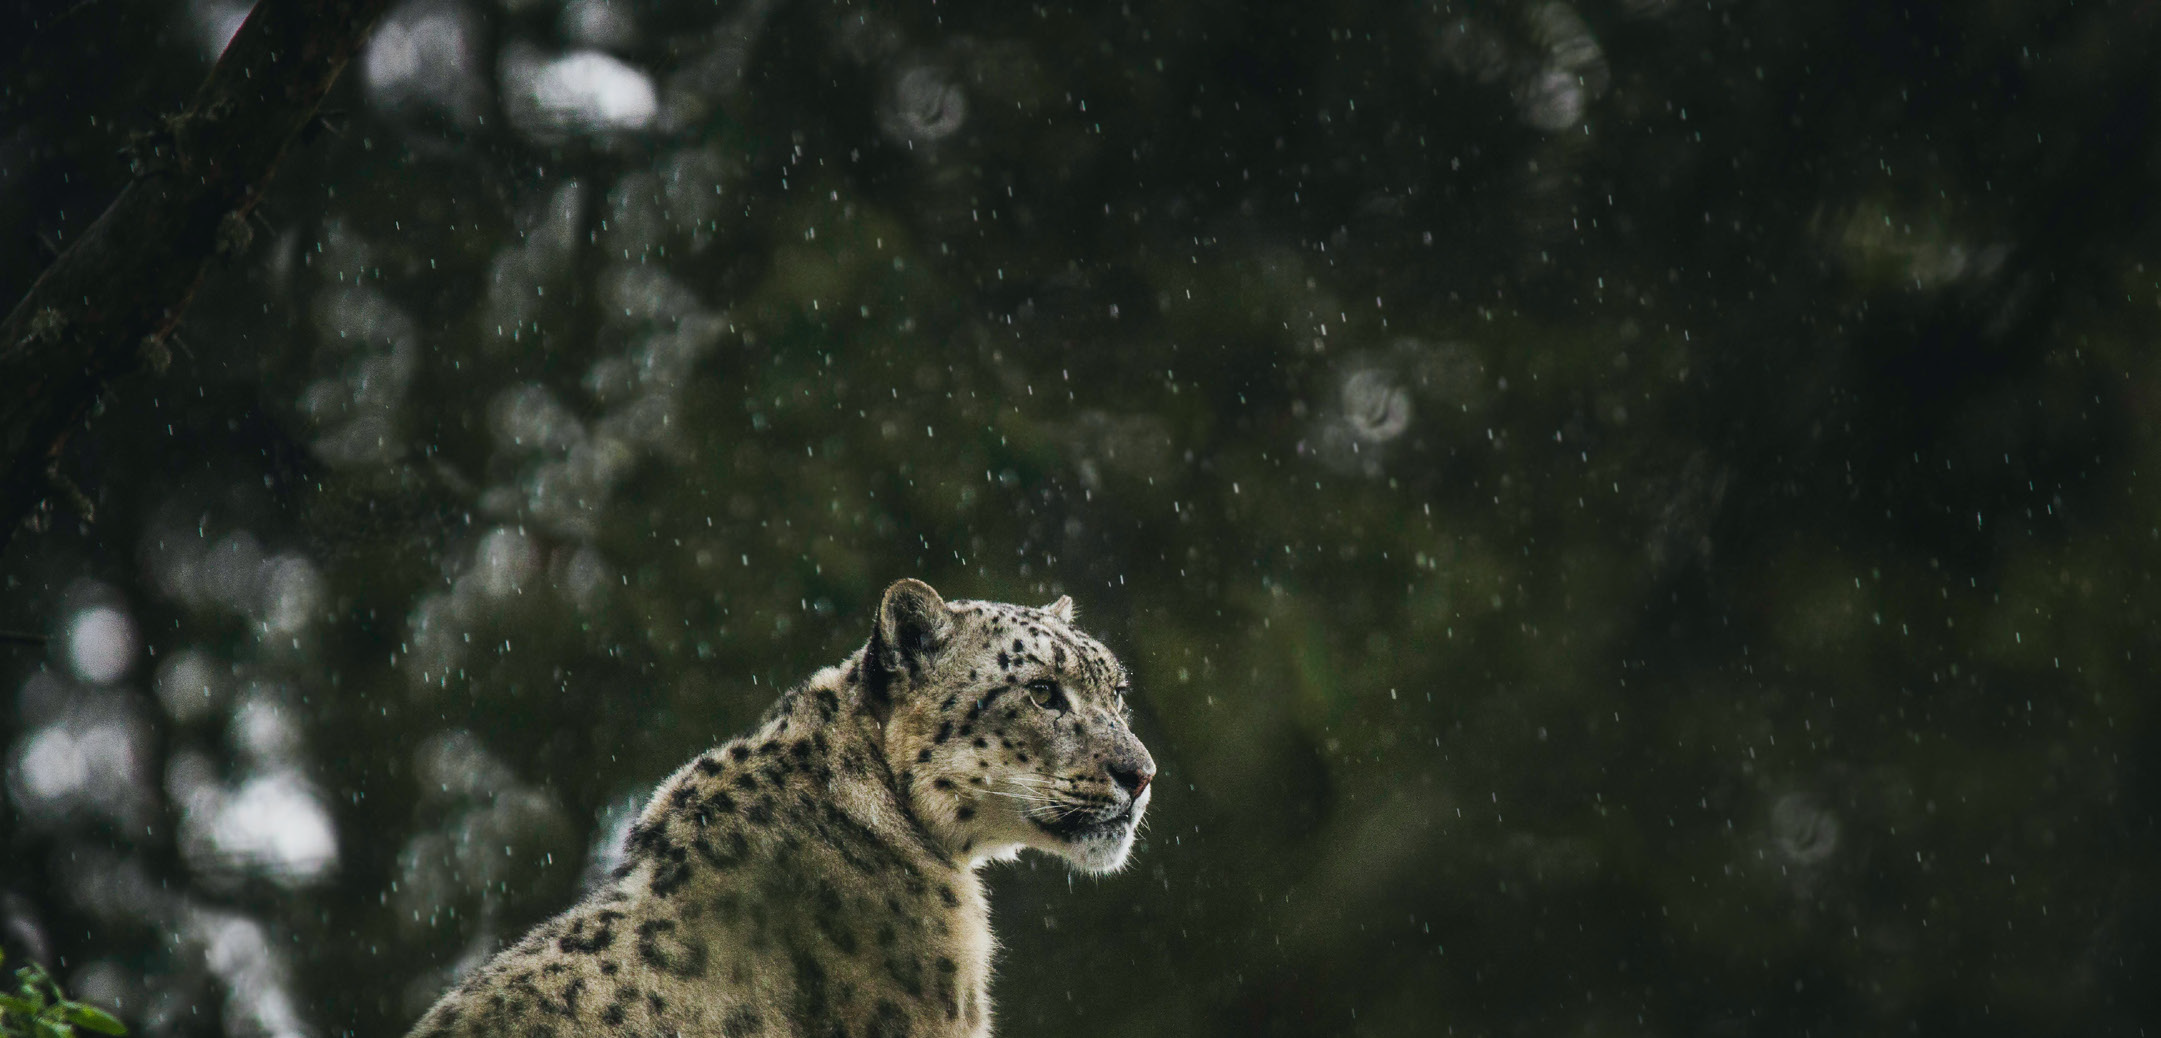 Preventing illegal trade in snow leopards